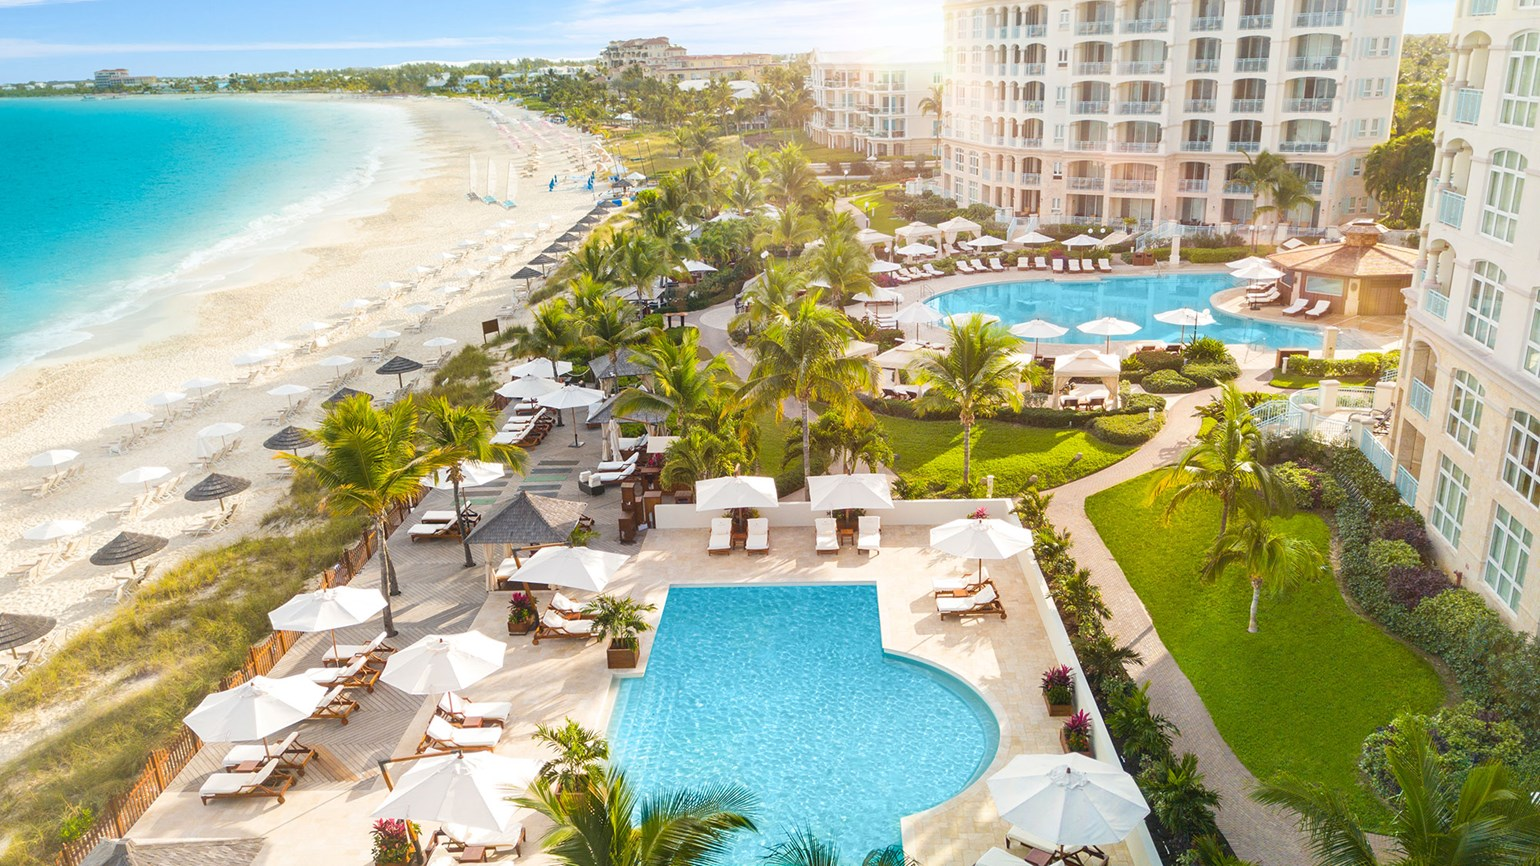 Seven Stars on Turks and Caicos rolls out enhancements